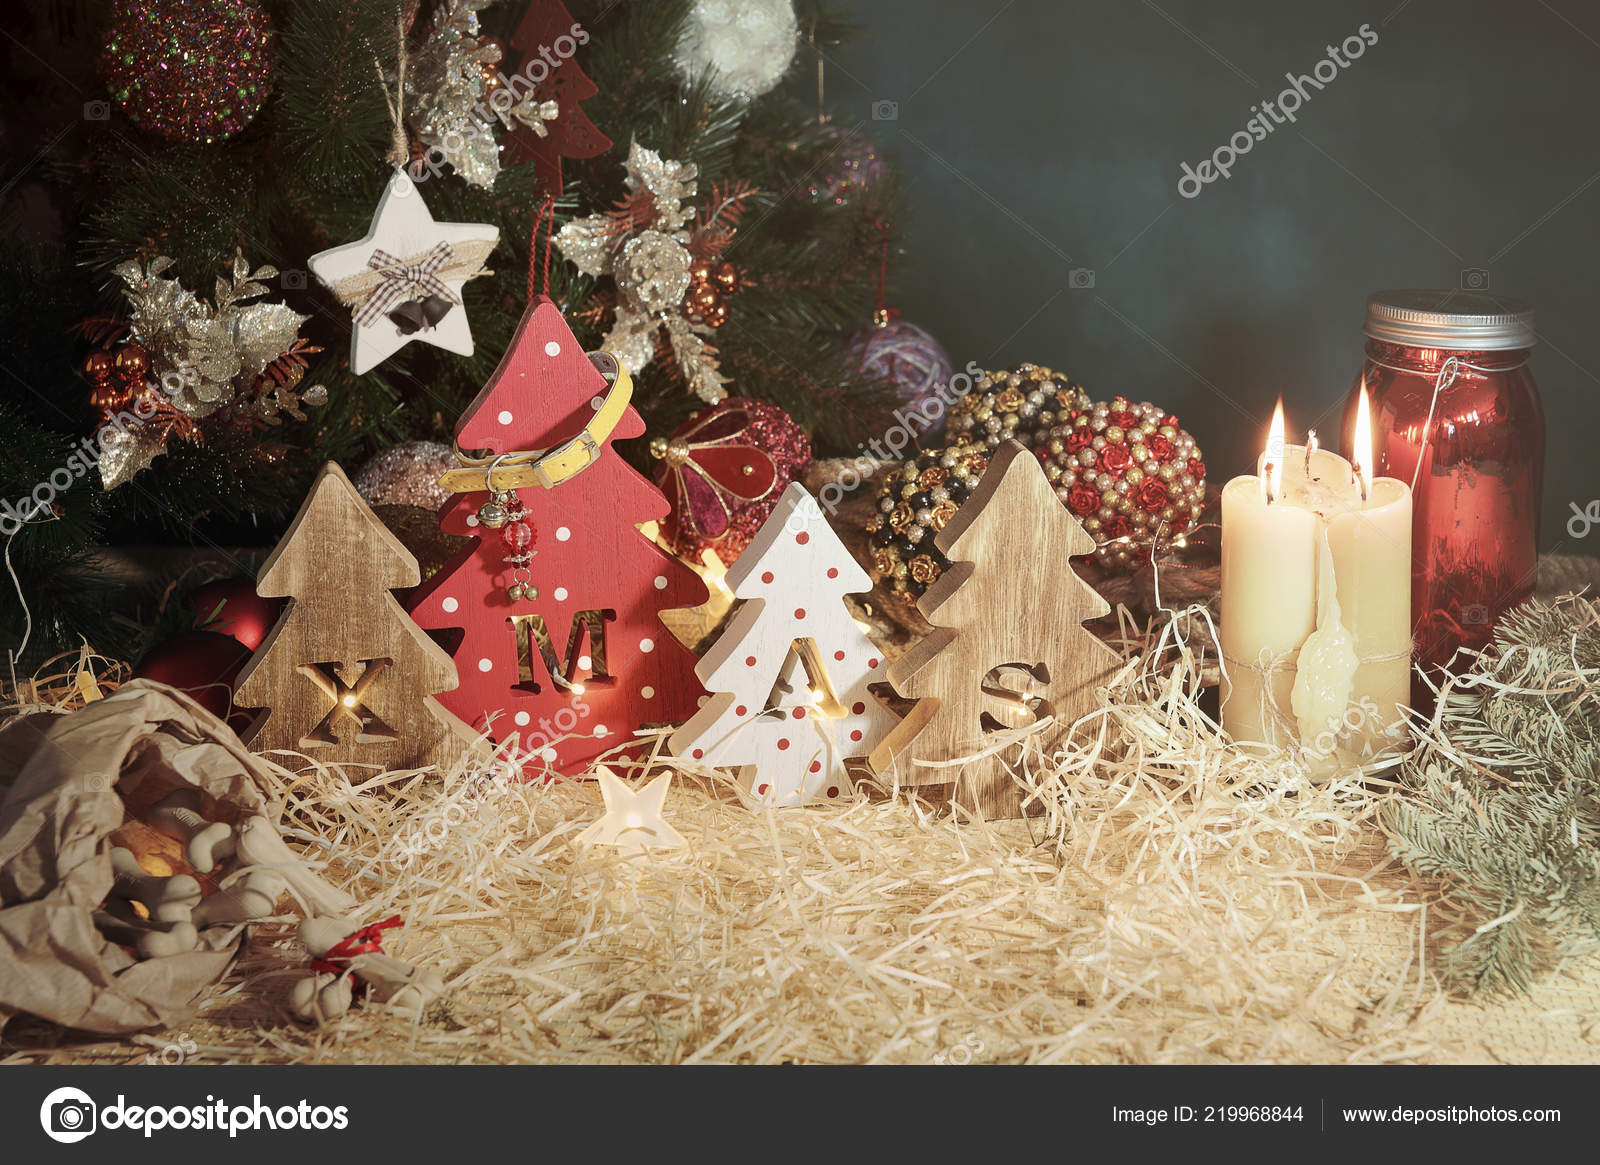 Four Decorative Wooden Christmas Trees With Carved Letters Xmas And